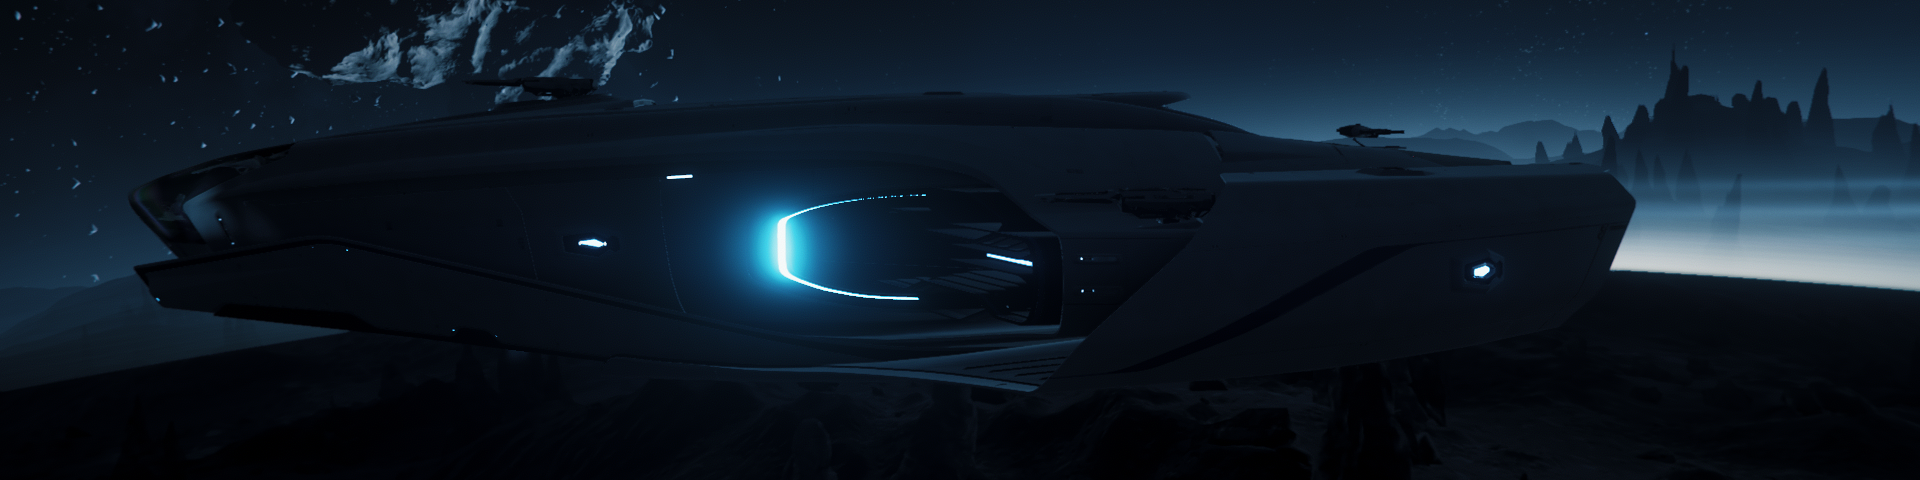 Exploration Cutter flying low over the jagged landscape of a planetoid